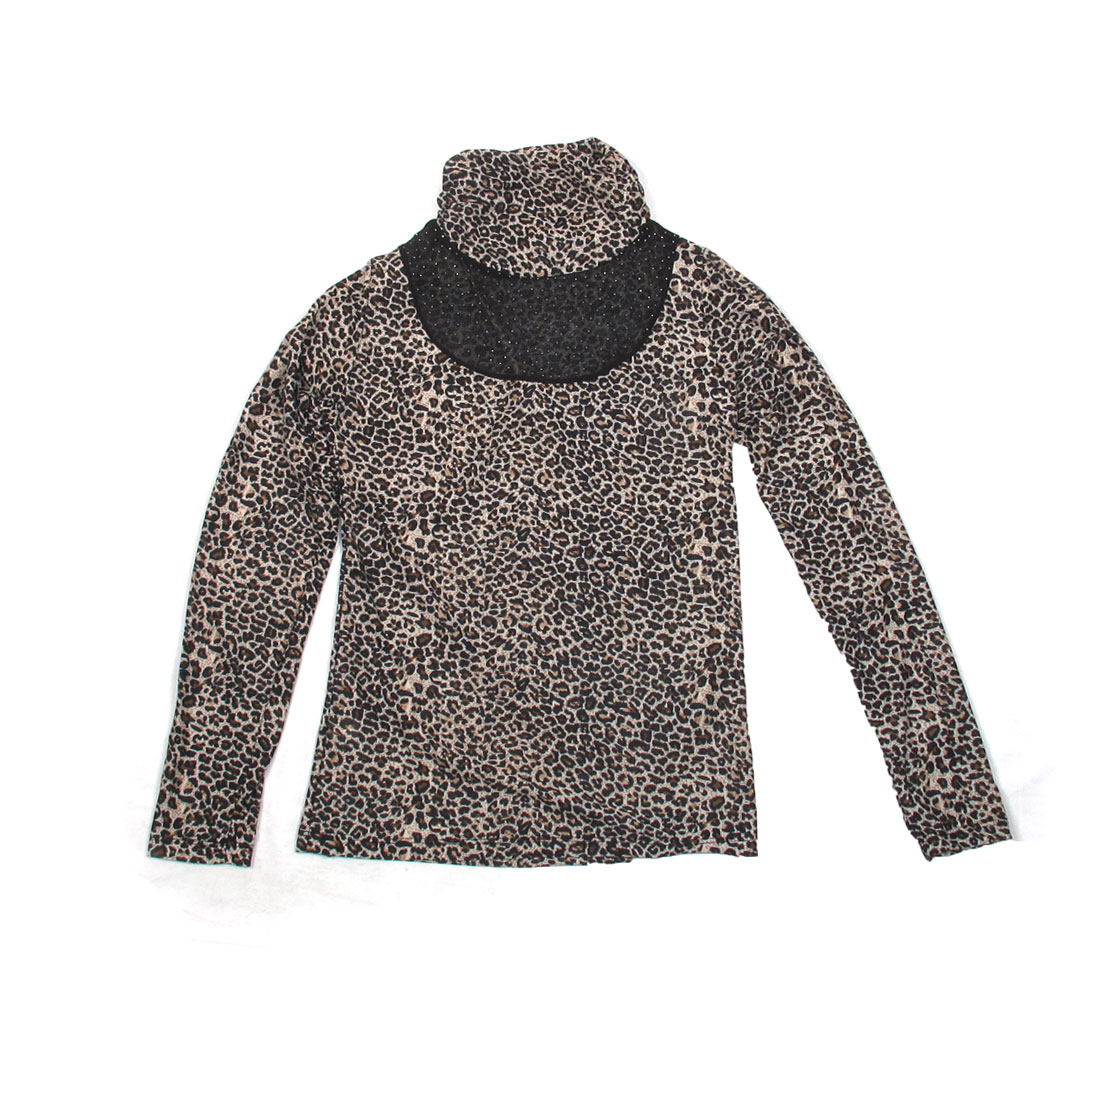 Beige Leopard Printed Rivets Decor Ruffled Collar Autumn Spring Shirt Tops for Ladies XS